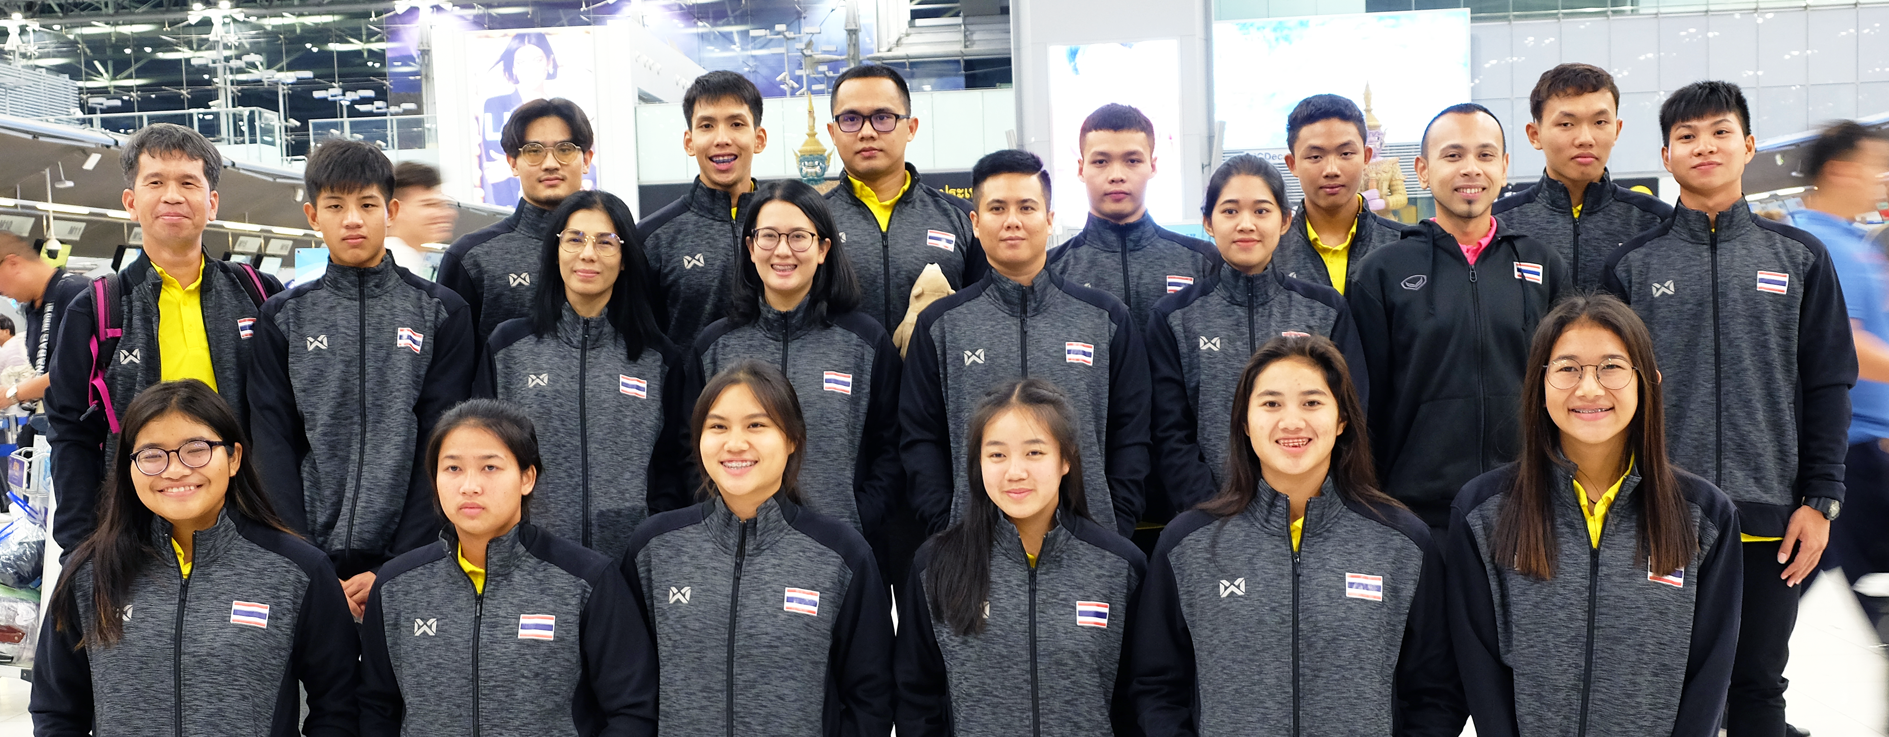 17th Asian Finswimming Championships 2019 and Asian Junior Finswimming Competition ณ เมืองเหยียนไถ สาธารณรัฐประชาชนจีน